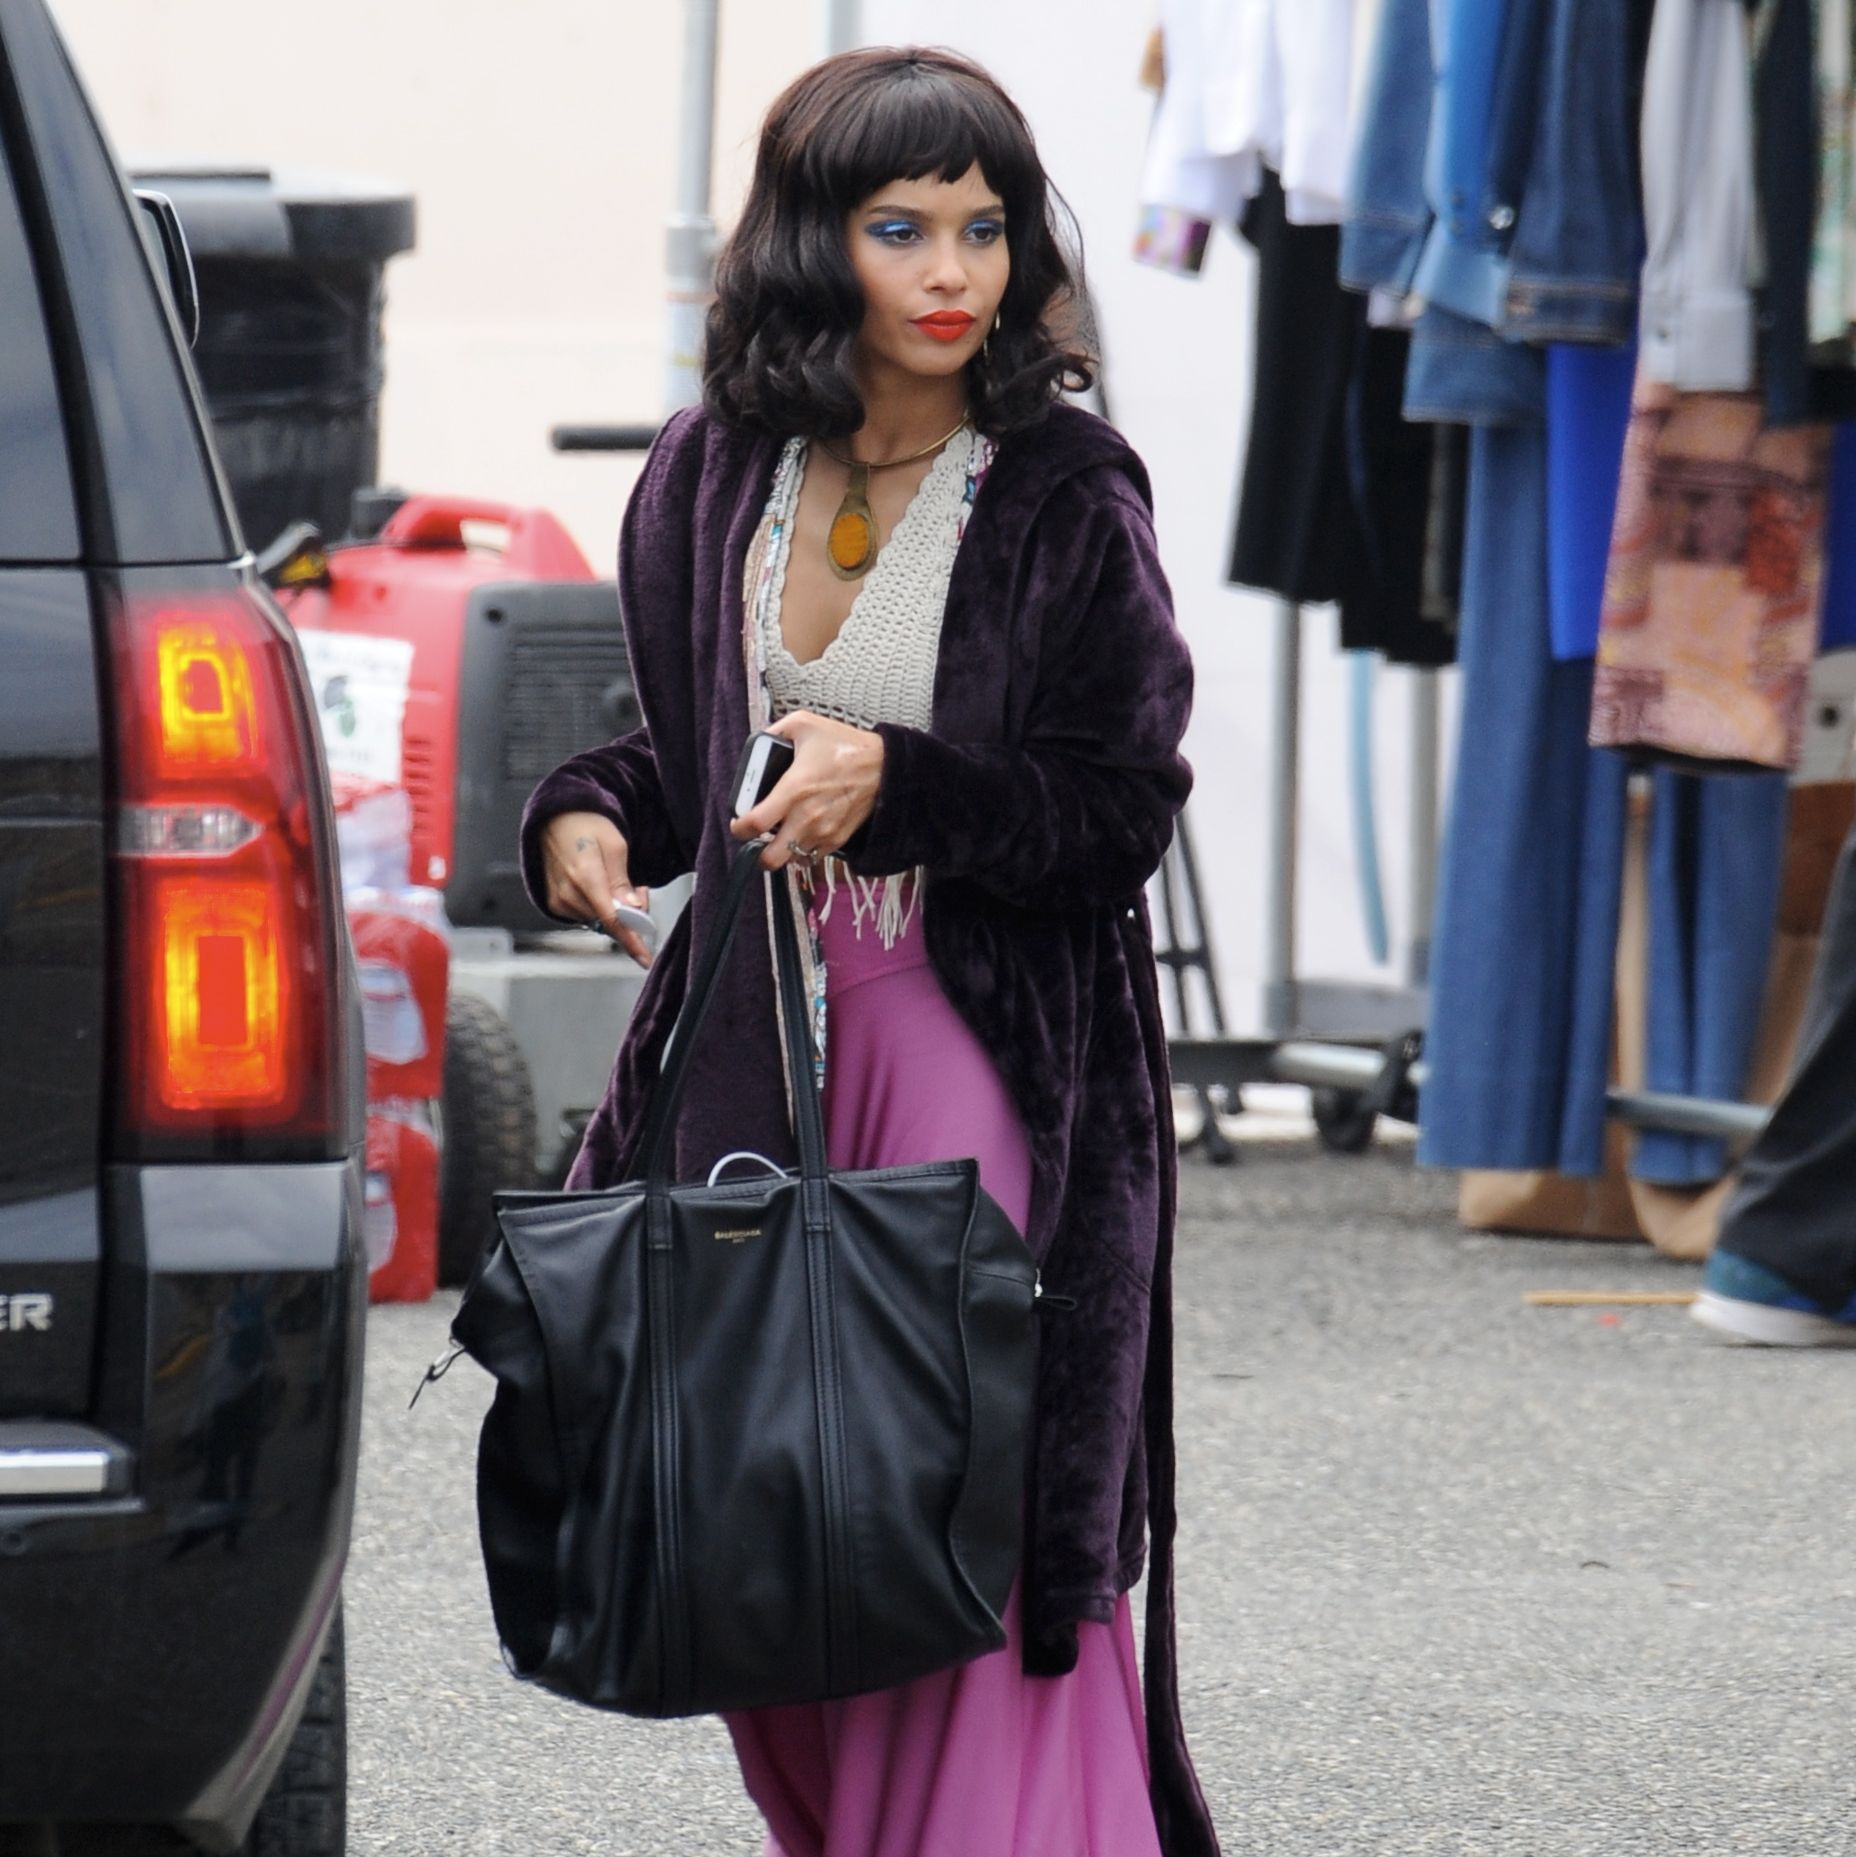 Zoe Kravitz and Laura Dern get into Character before Filming a Scene for 'Big Little Lies' in Los Angeles.